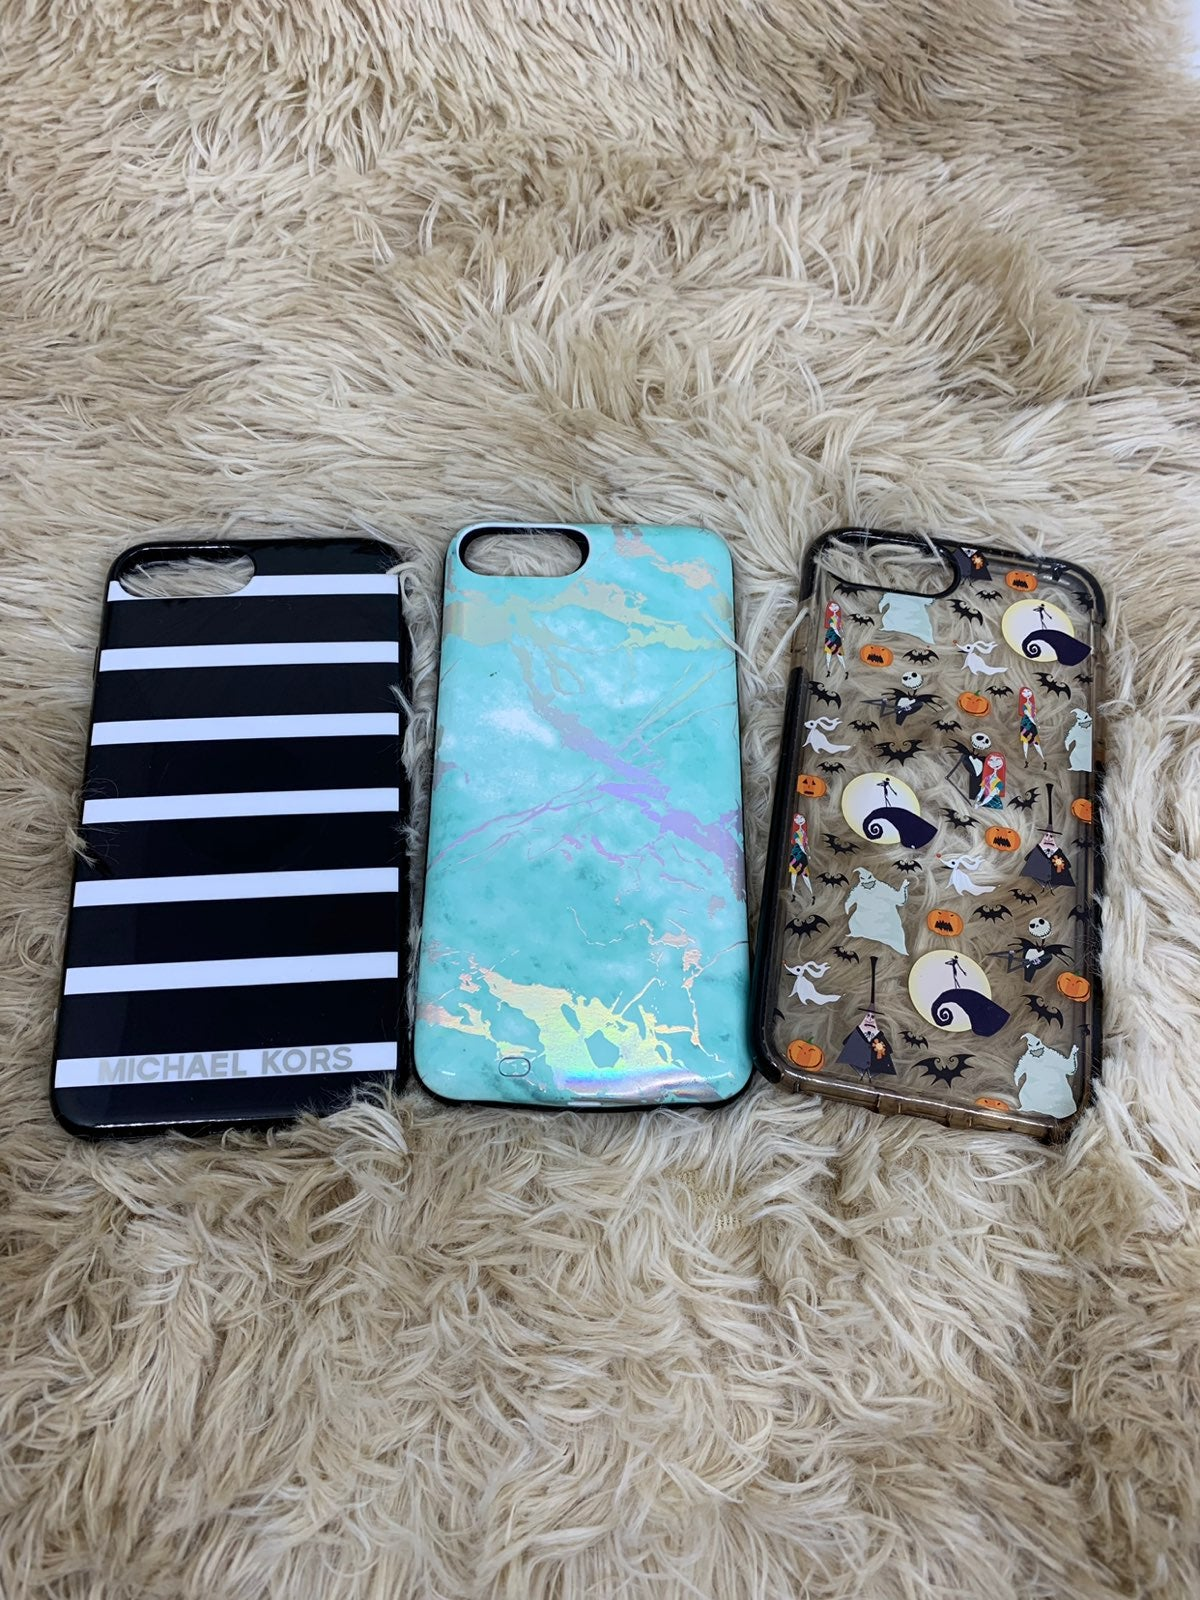 iPhone 7+ 8+ Cases Michael Kors